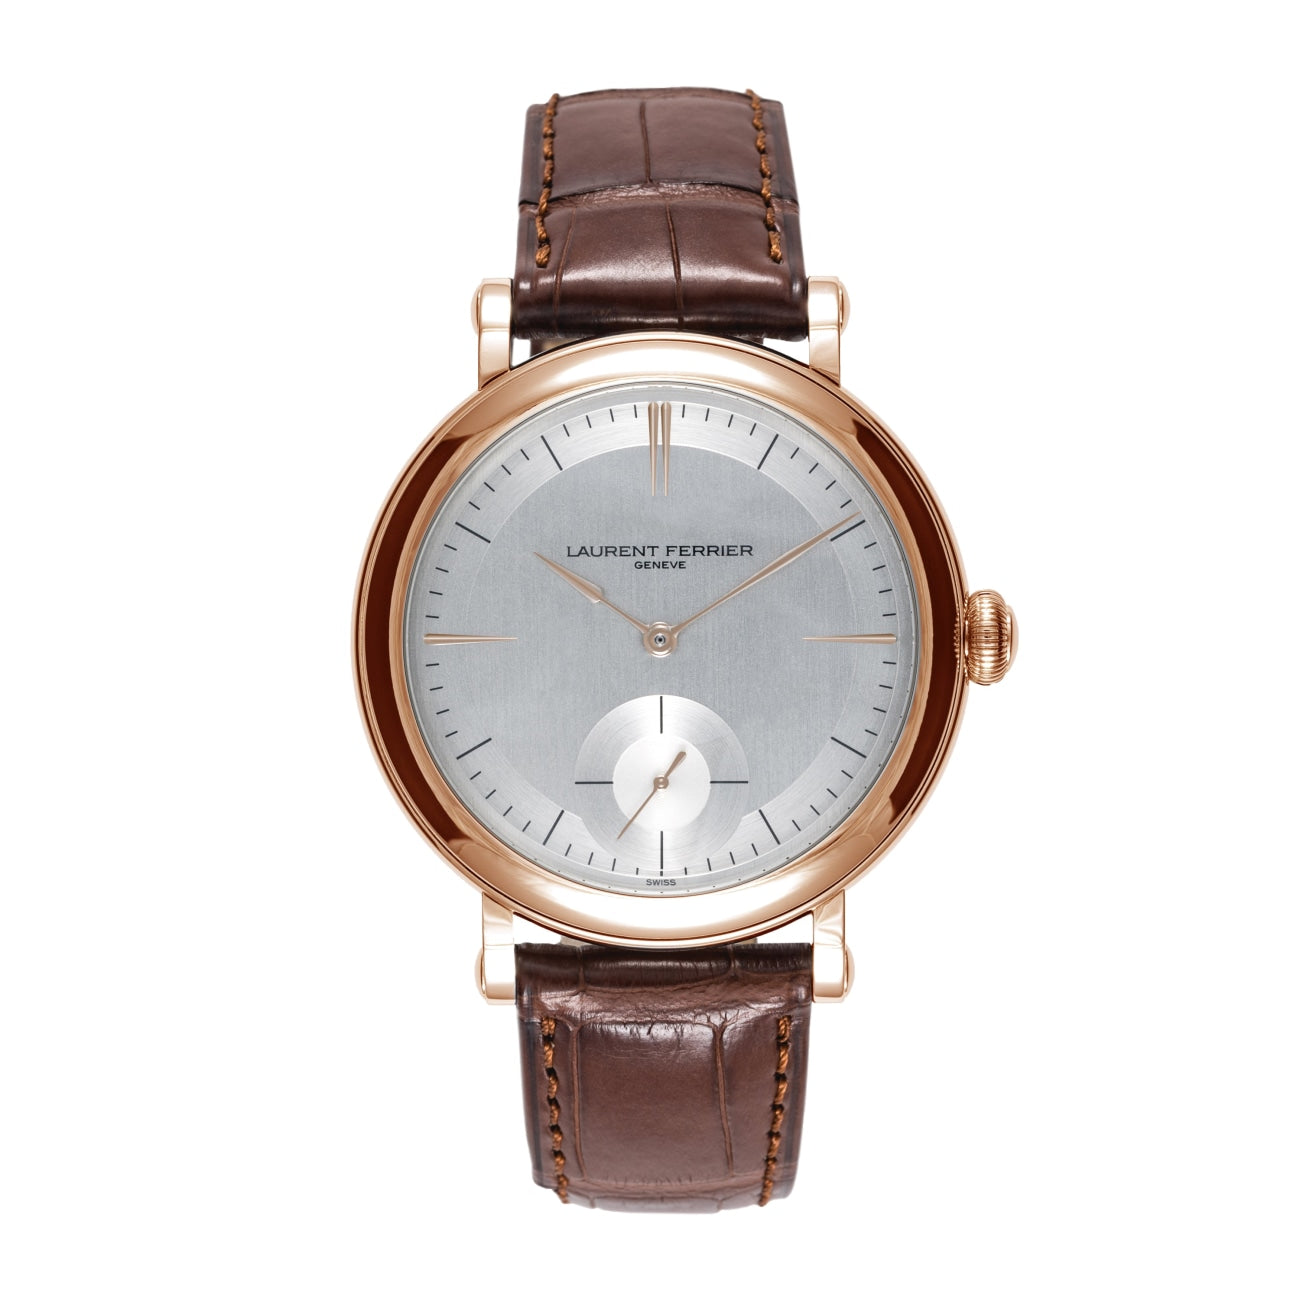 Laurent Ferrier Watches - Galet Micro-Rotor Montre Ecole | Manfredi Jewels